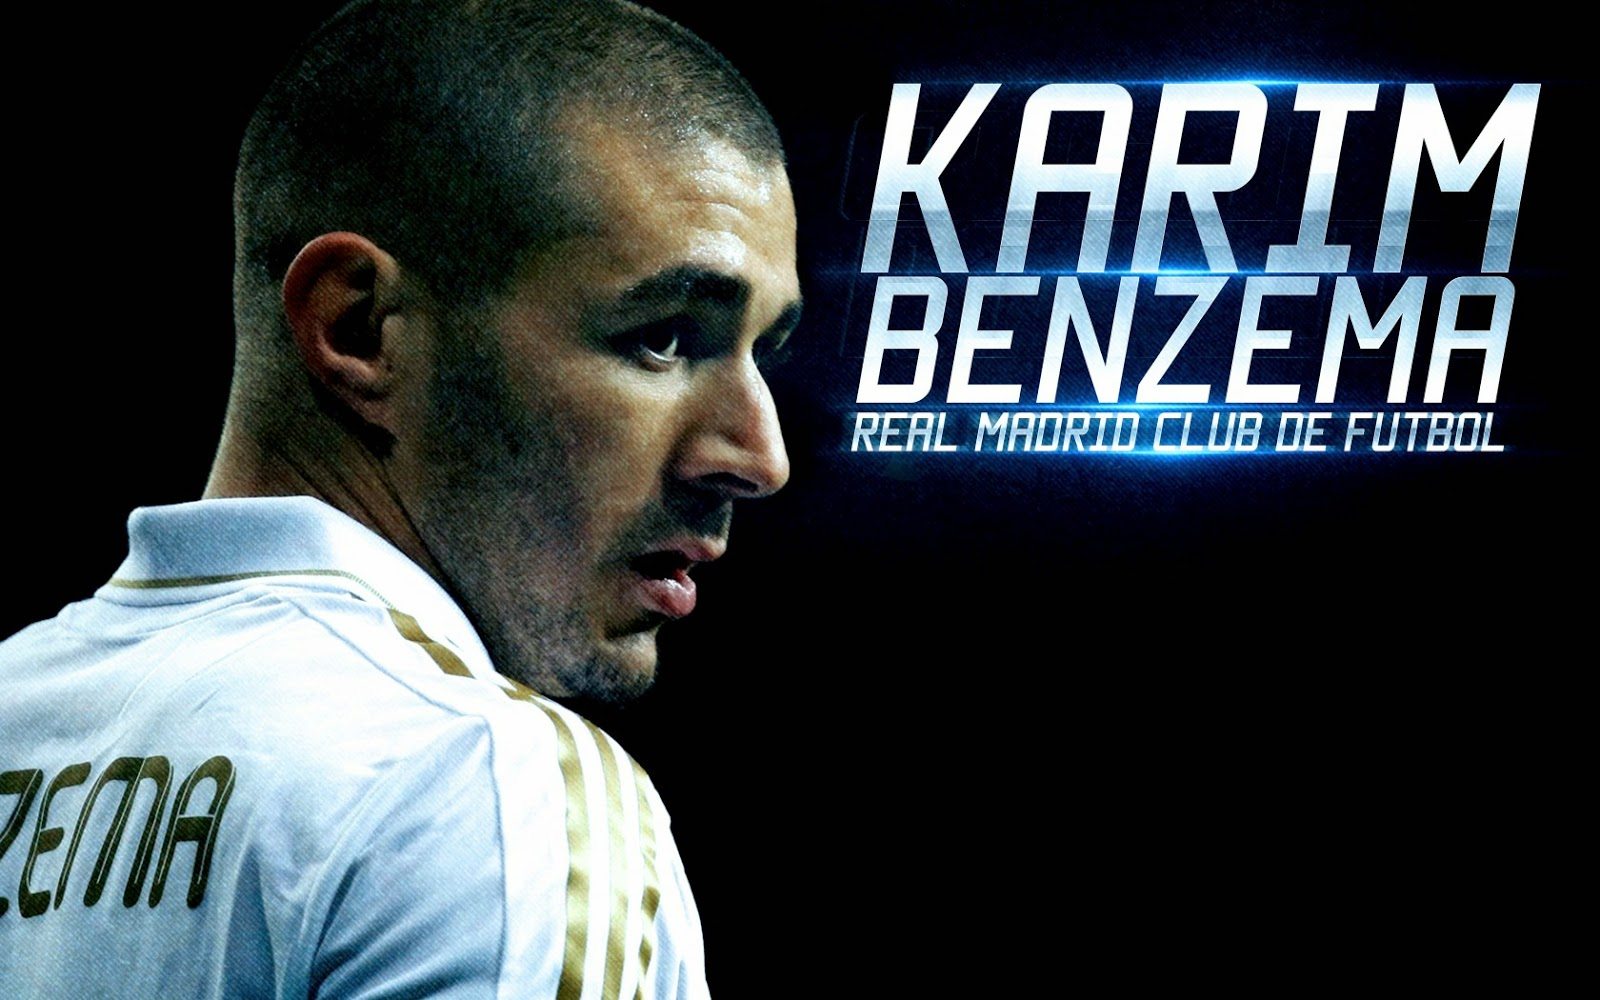 Benzema Wallpaper 2016